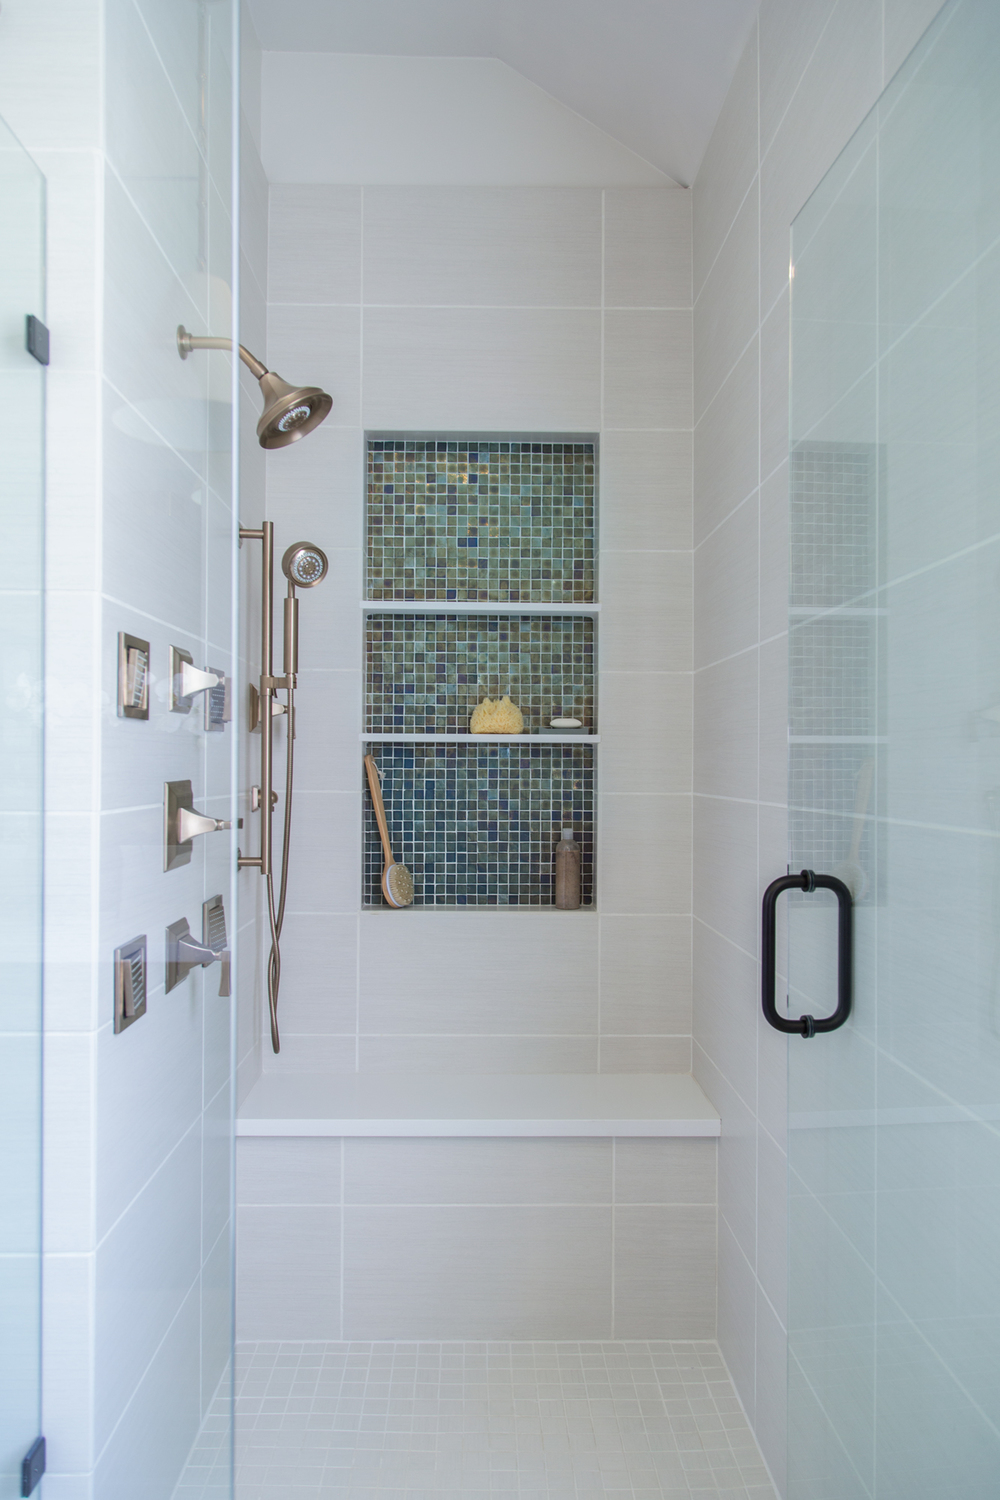 Bathroom design trends |Designer: Carla Aston, Photographer: Tori Aston #bathroom #bathroomideas #bathroomremodel